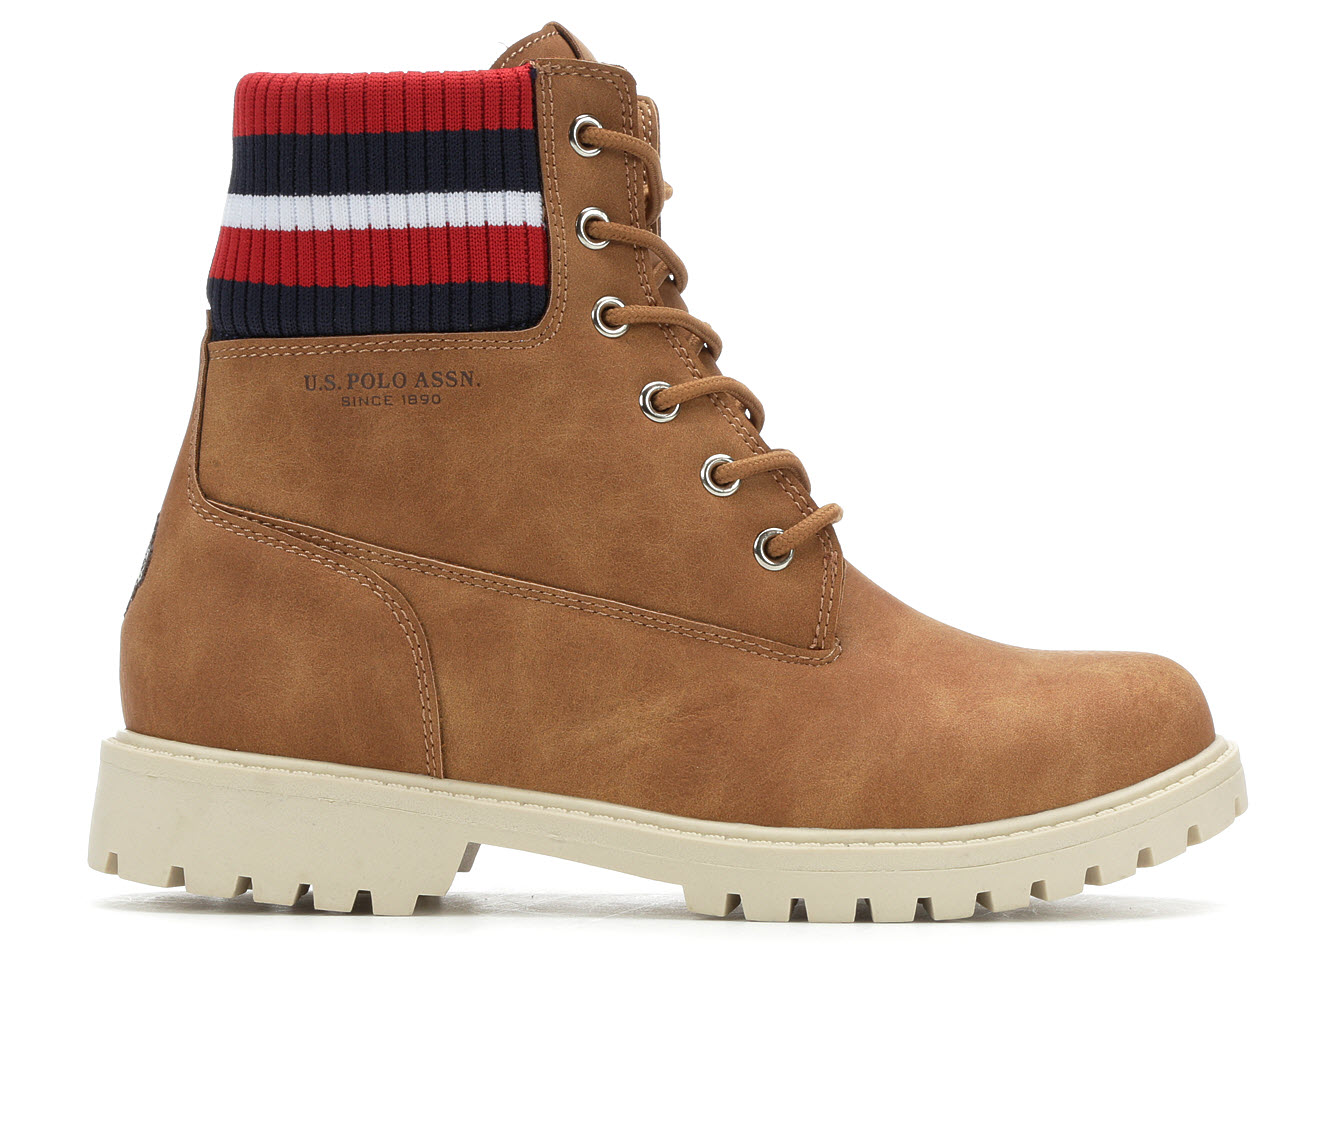 US Polo Assn Holland Women's Boots (Beige - Faux Leather)